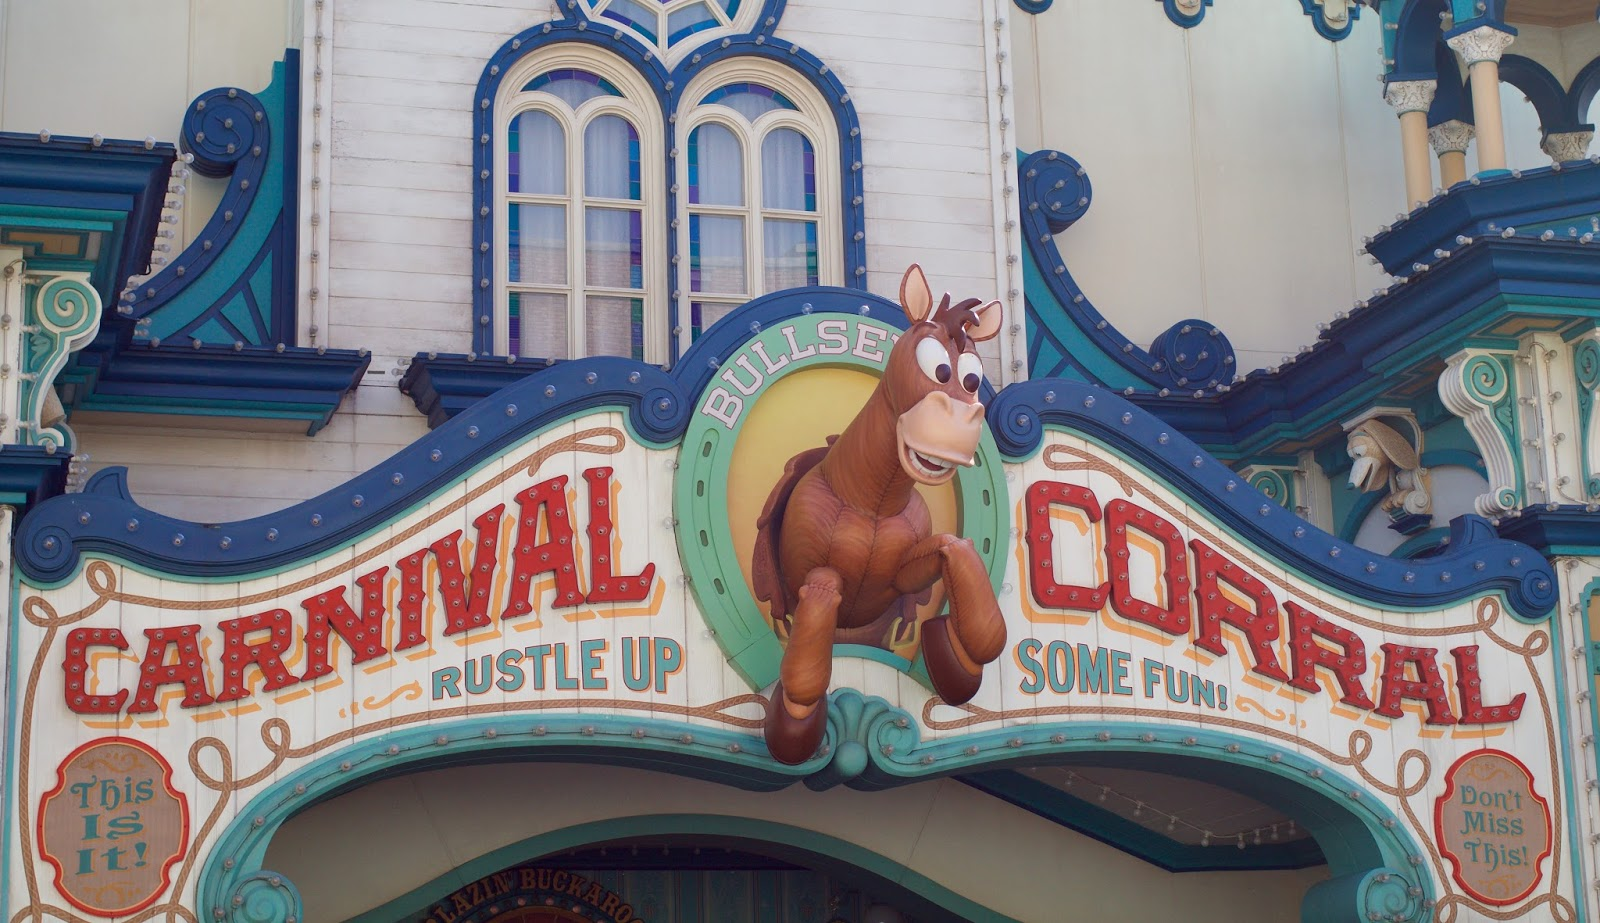 Tokyo-Disney-Sea-American-waterfront-Toy-Story-carnival-corral